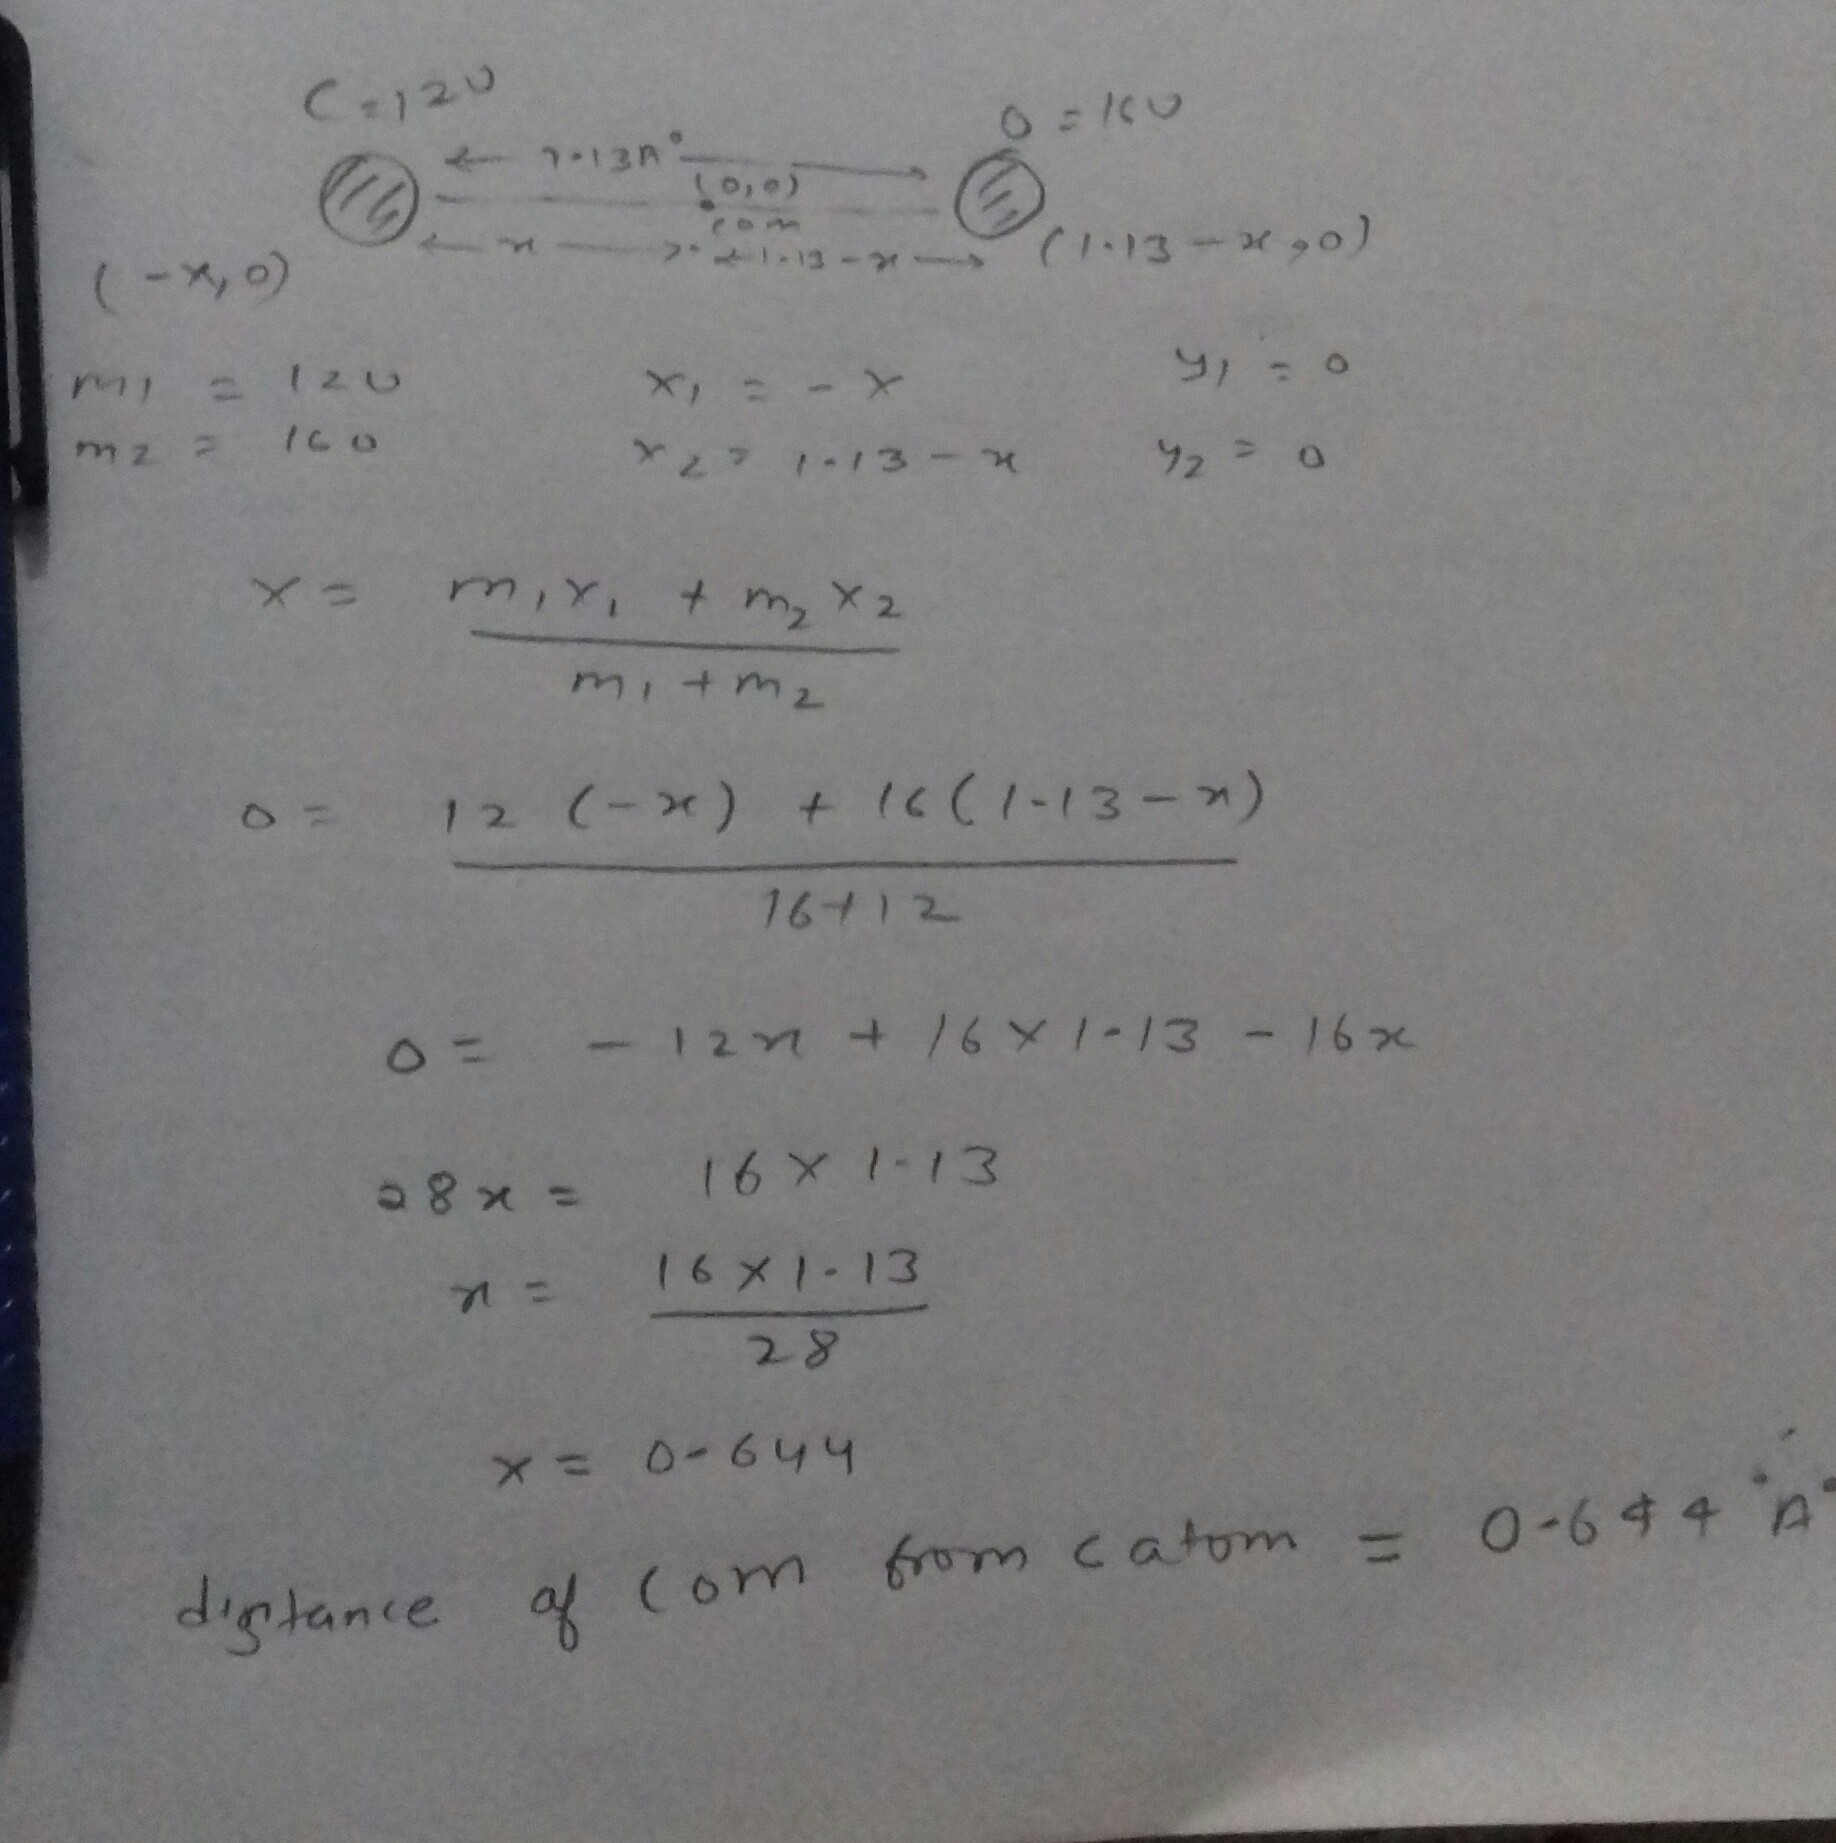 The distance between the center of mass of carbon and oxygen atoms ...